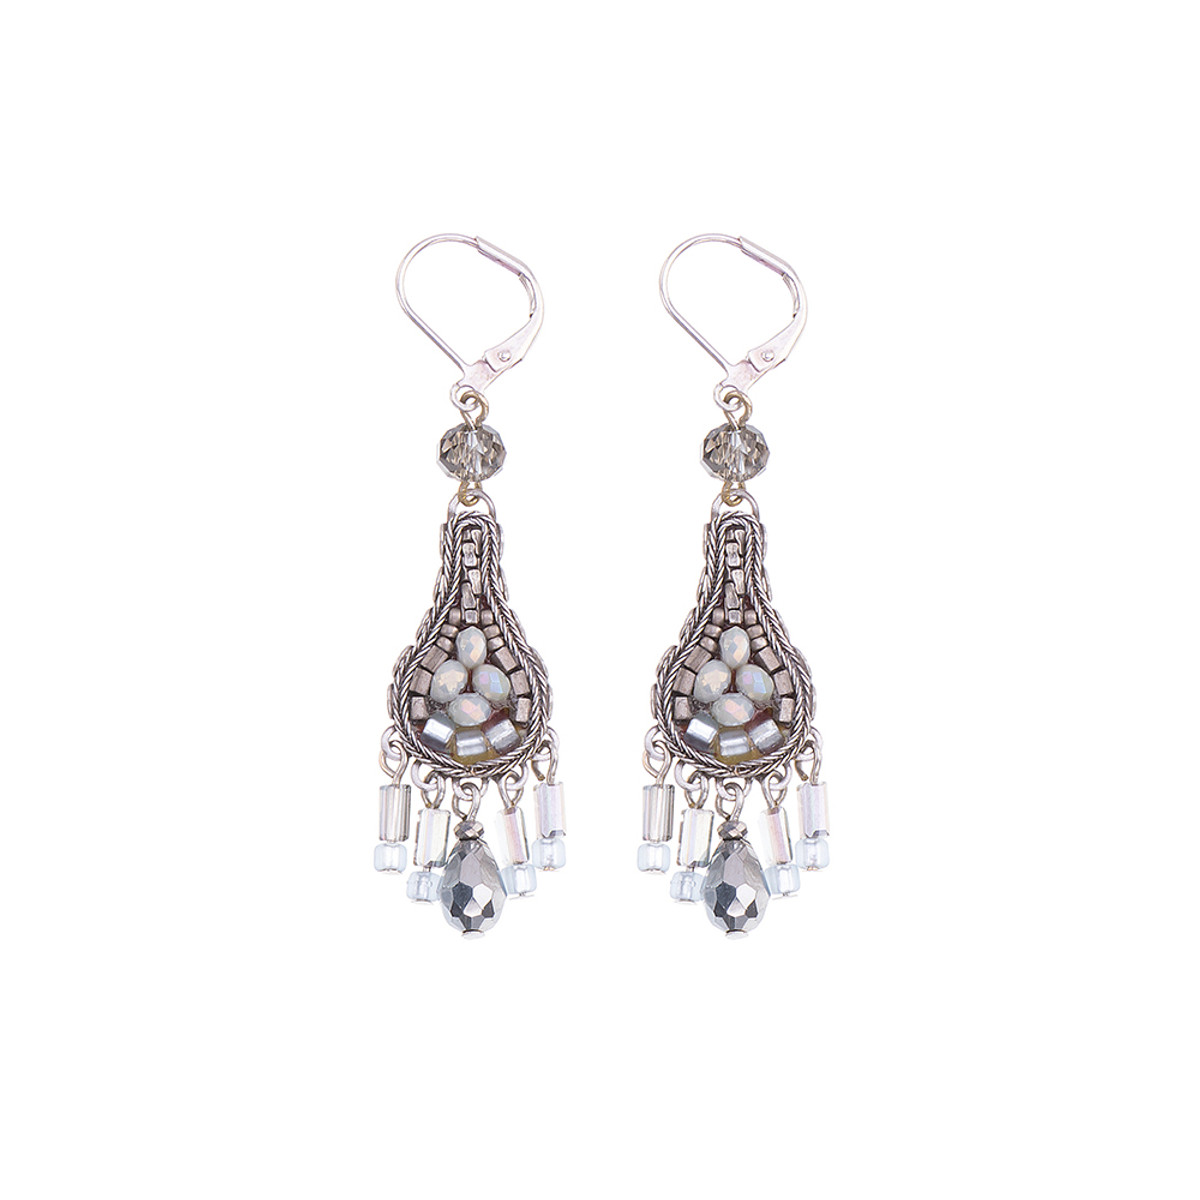 Ayala Bar Silver Odyssey French Wire Earrings